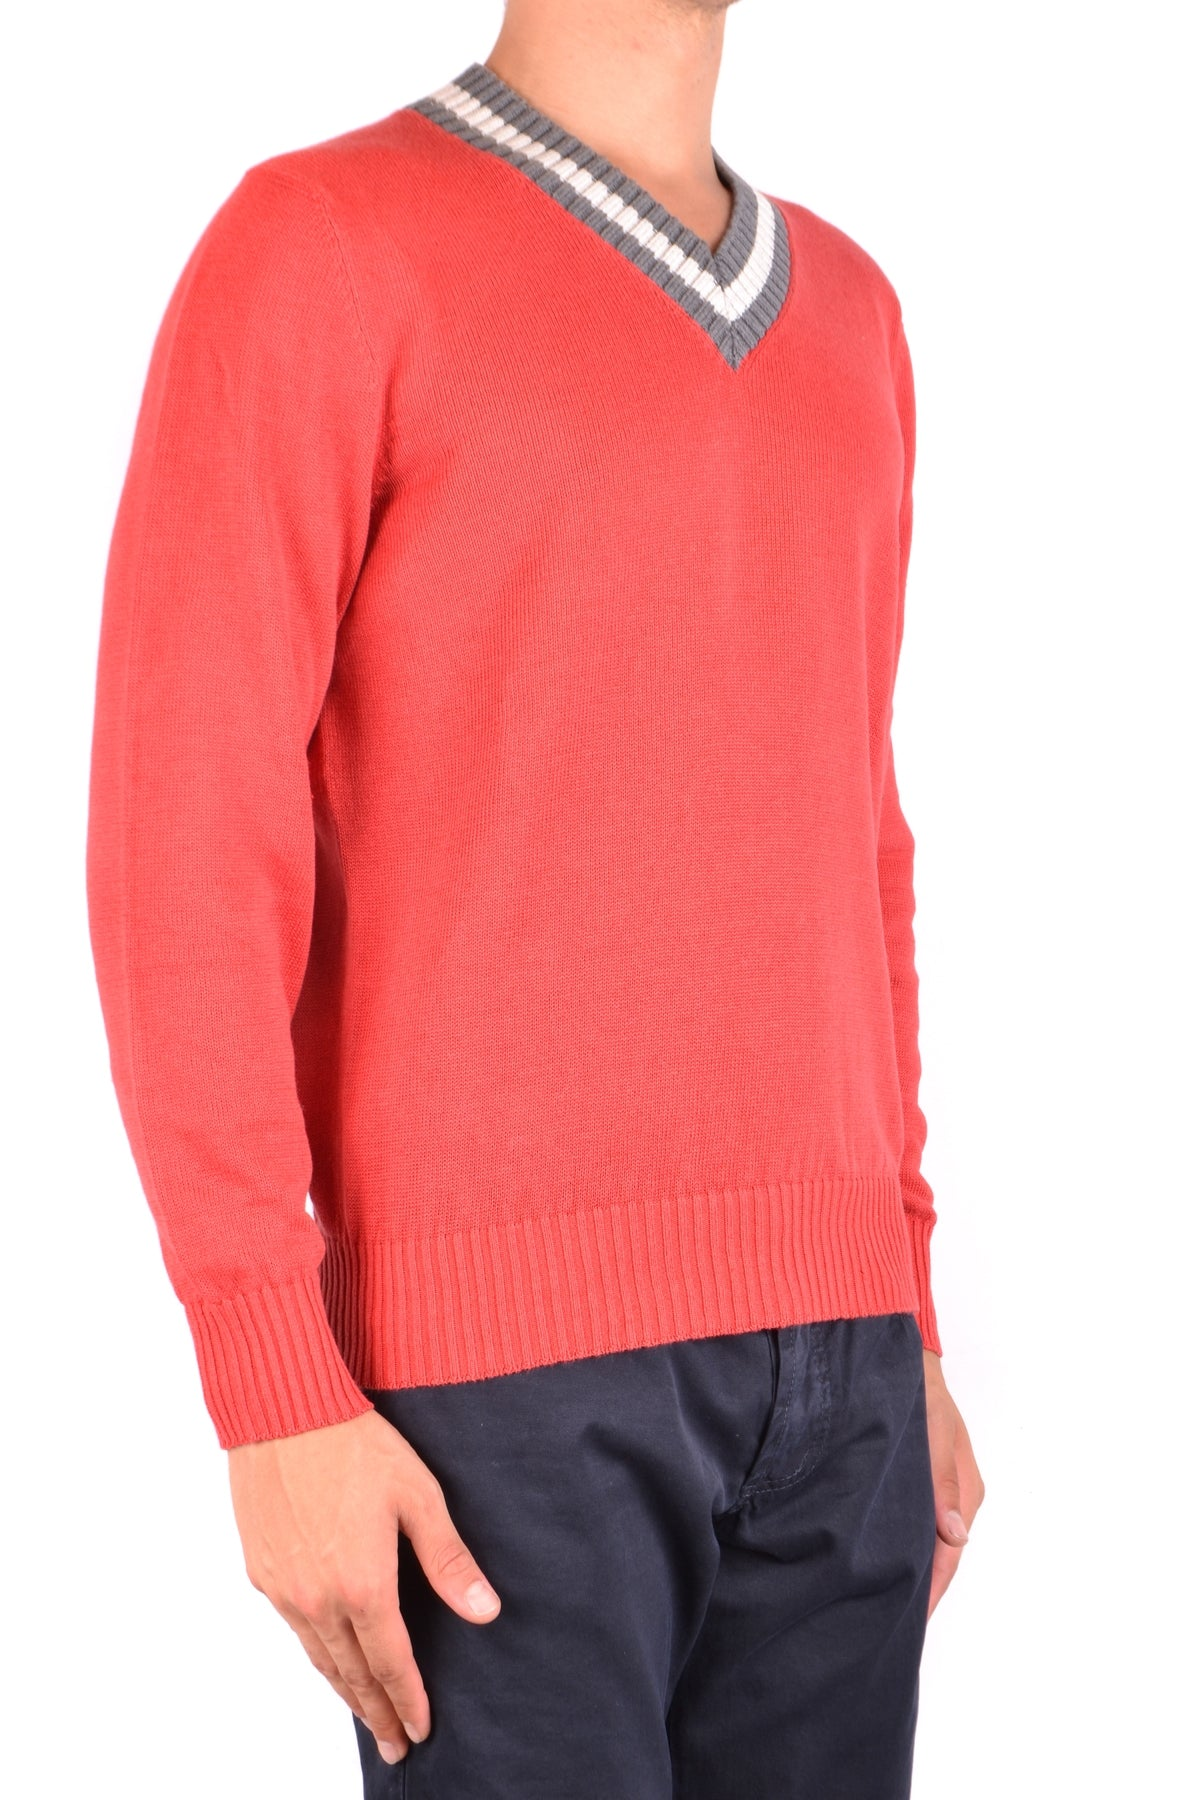 Sweater Brunello Cucinelli-Sweater - MAN-Product Details Season: Spring / SummerTerms: New With LabelMain Color: RedGender: ManMade In: ItalyManufacturer Part Number: M2L77502Size: ItYear: 2018Clothing Type: Sweater Composition: Cotton 23%, Linen 77%-Keyomi-Sook